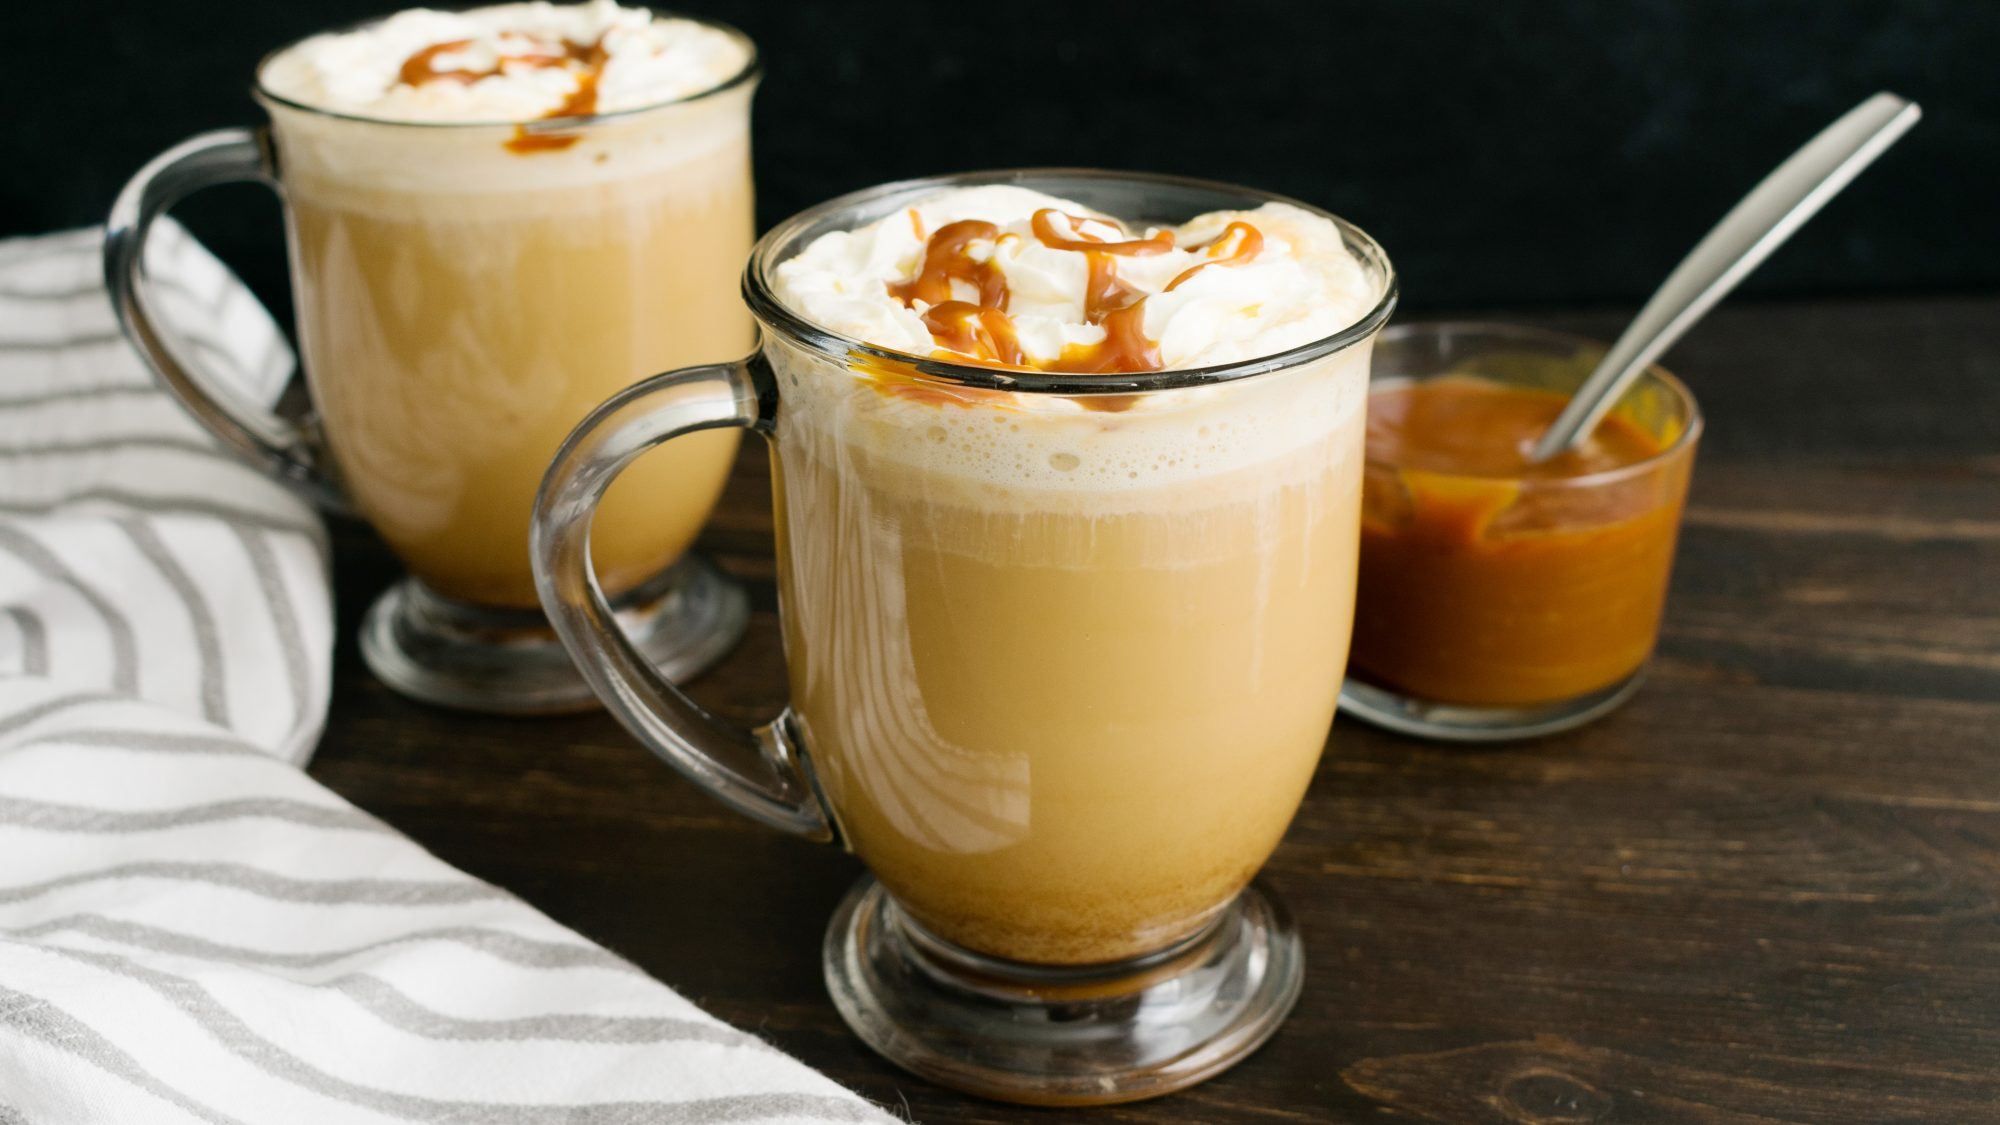 How to Make a Creamy, Comforting Homemade Caramel Latté—With or Without Any Fancy Tools